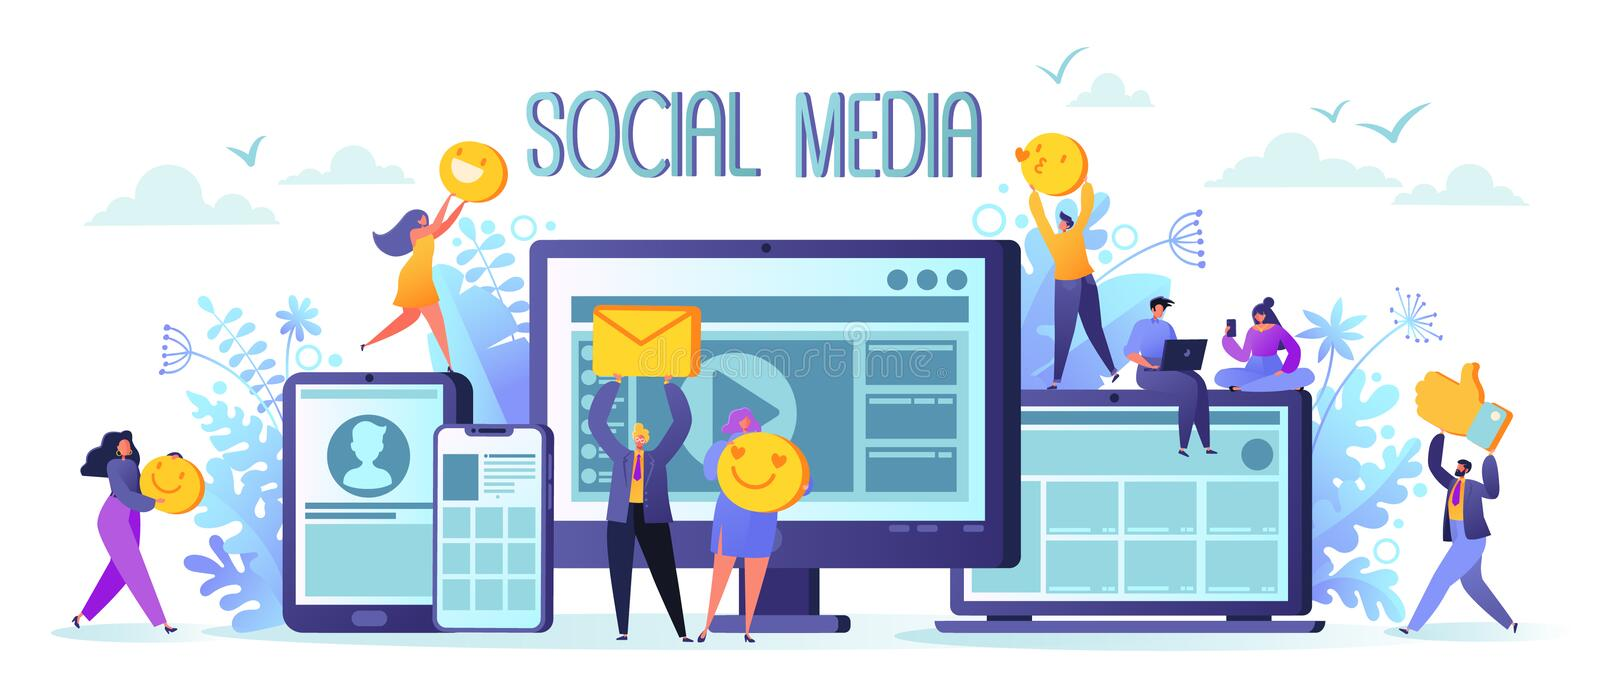 Social media networks concept. Man and woman characters chatting and blogging using mobile devices. Global internet community. Flat design and cartoon style vector illustration